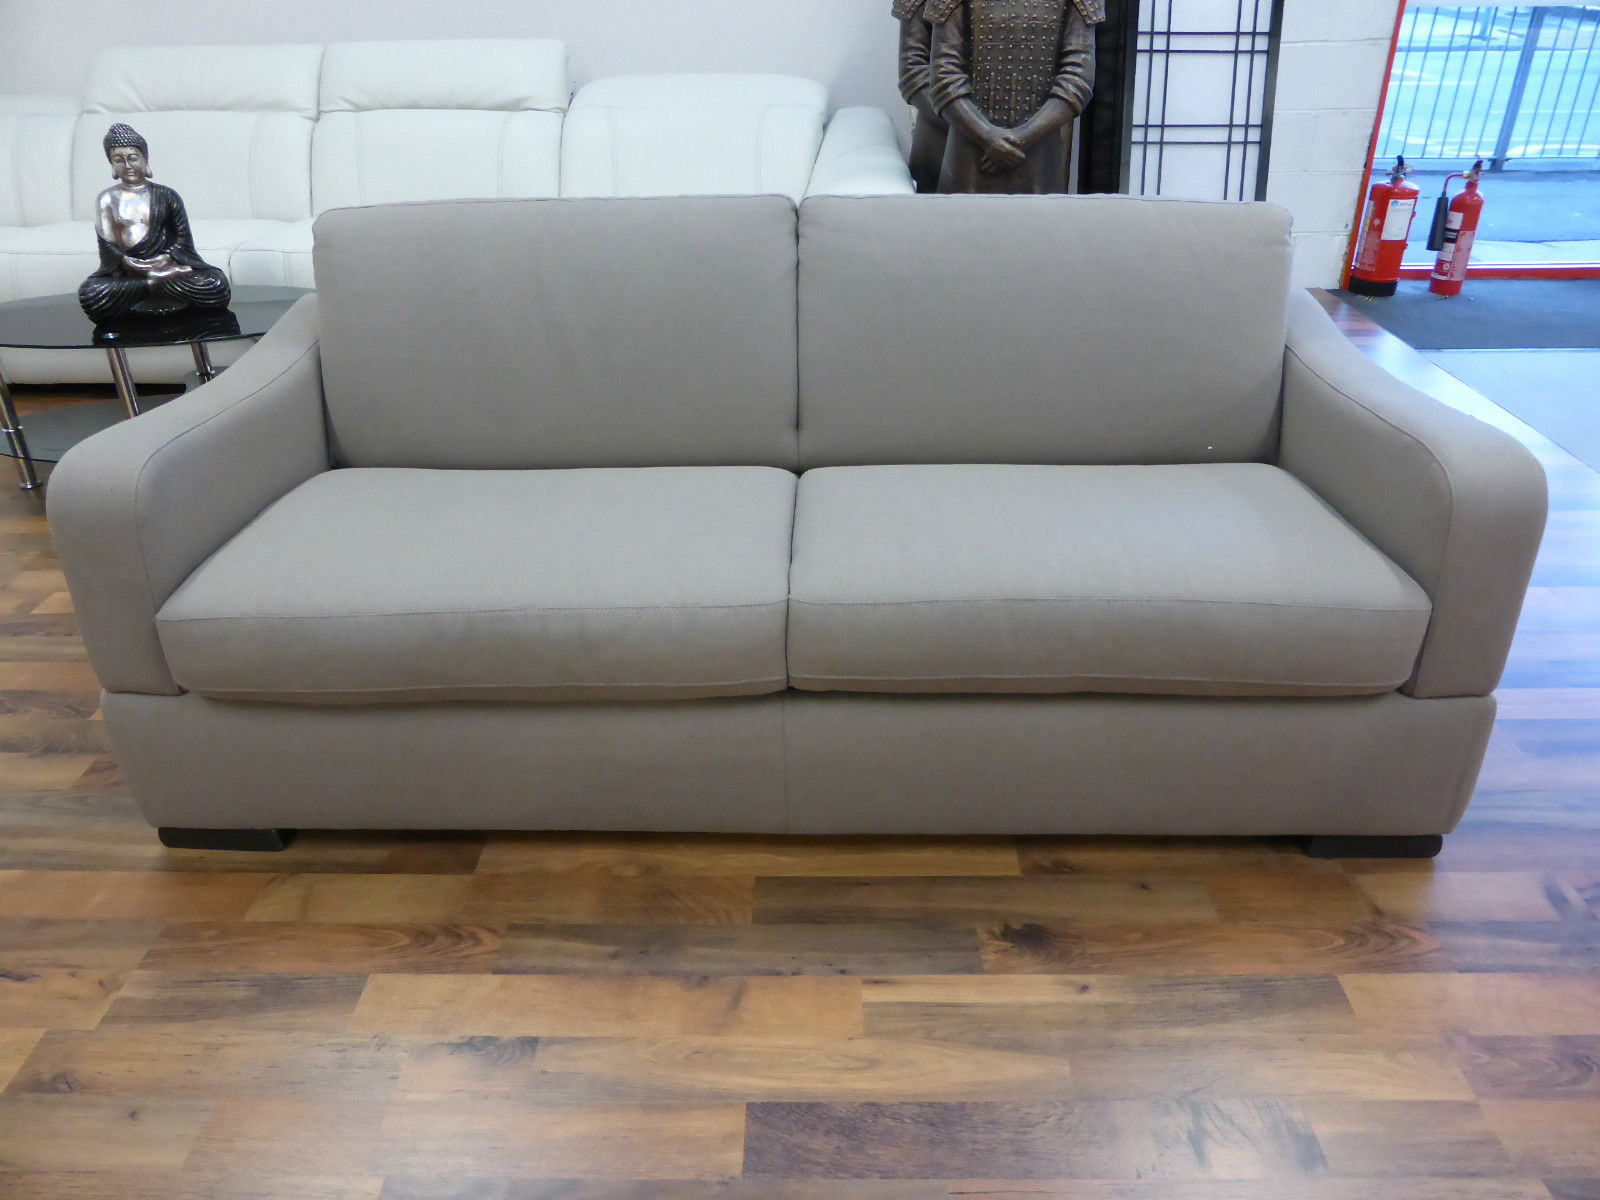 Italsofa jean 3 seater sofa bed furnimax brands outlet for Sofa bed outlet